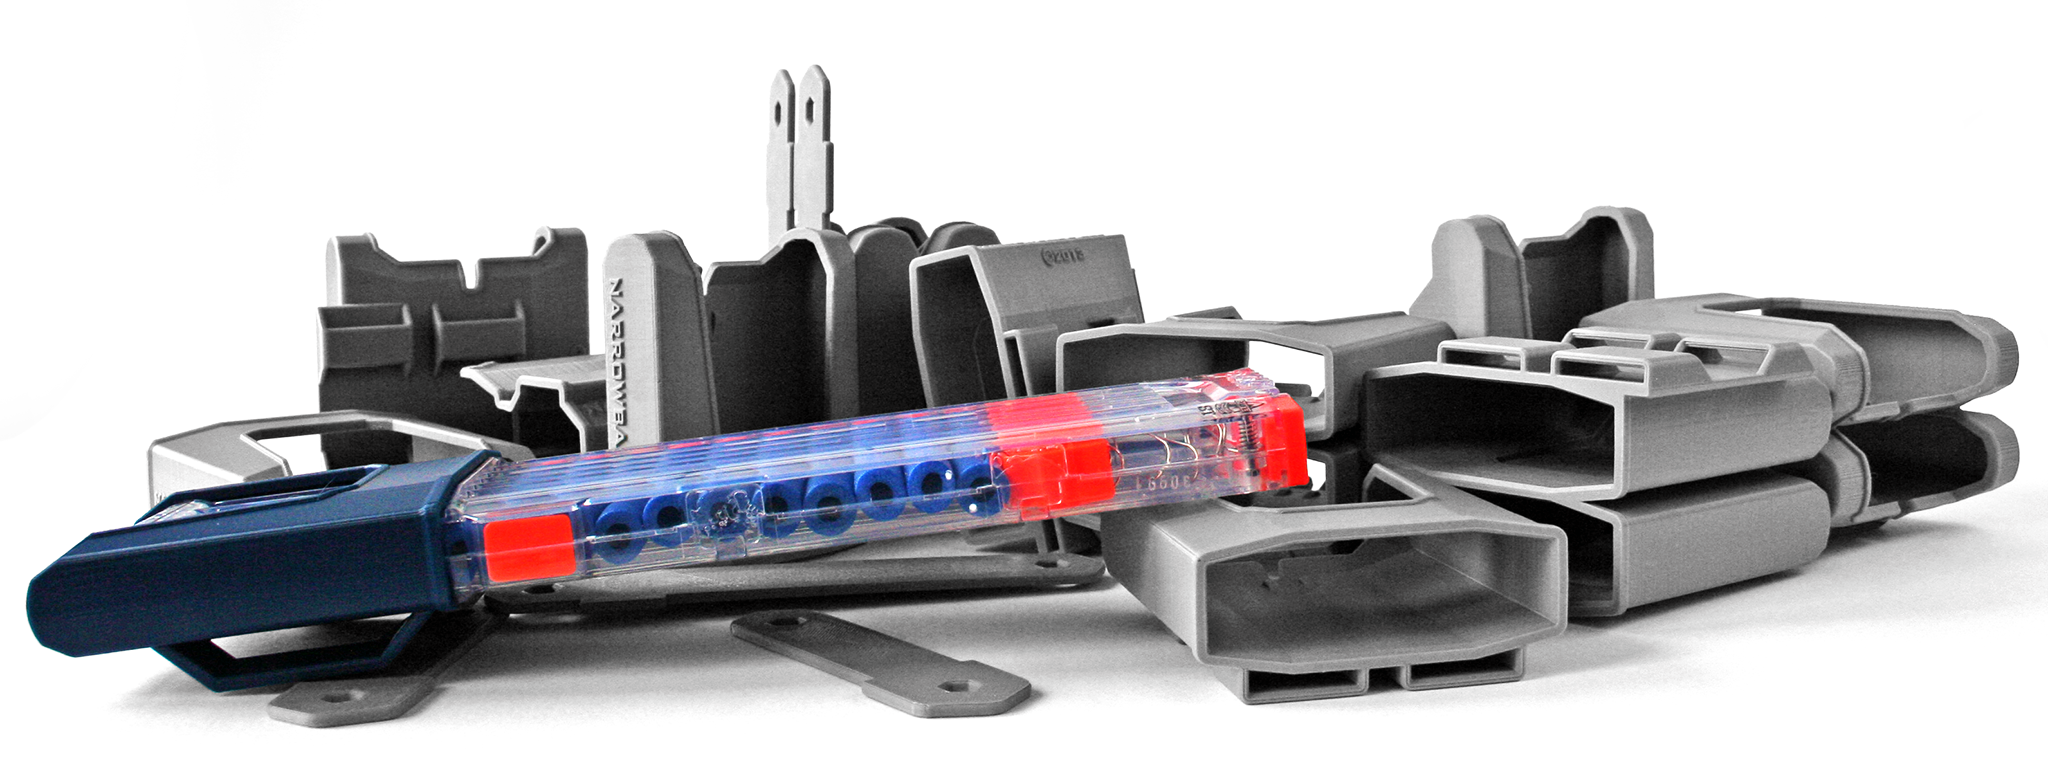 3D printed Nerf accessories from NarrowBase via 3D Printing Industry